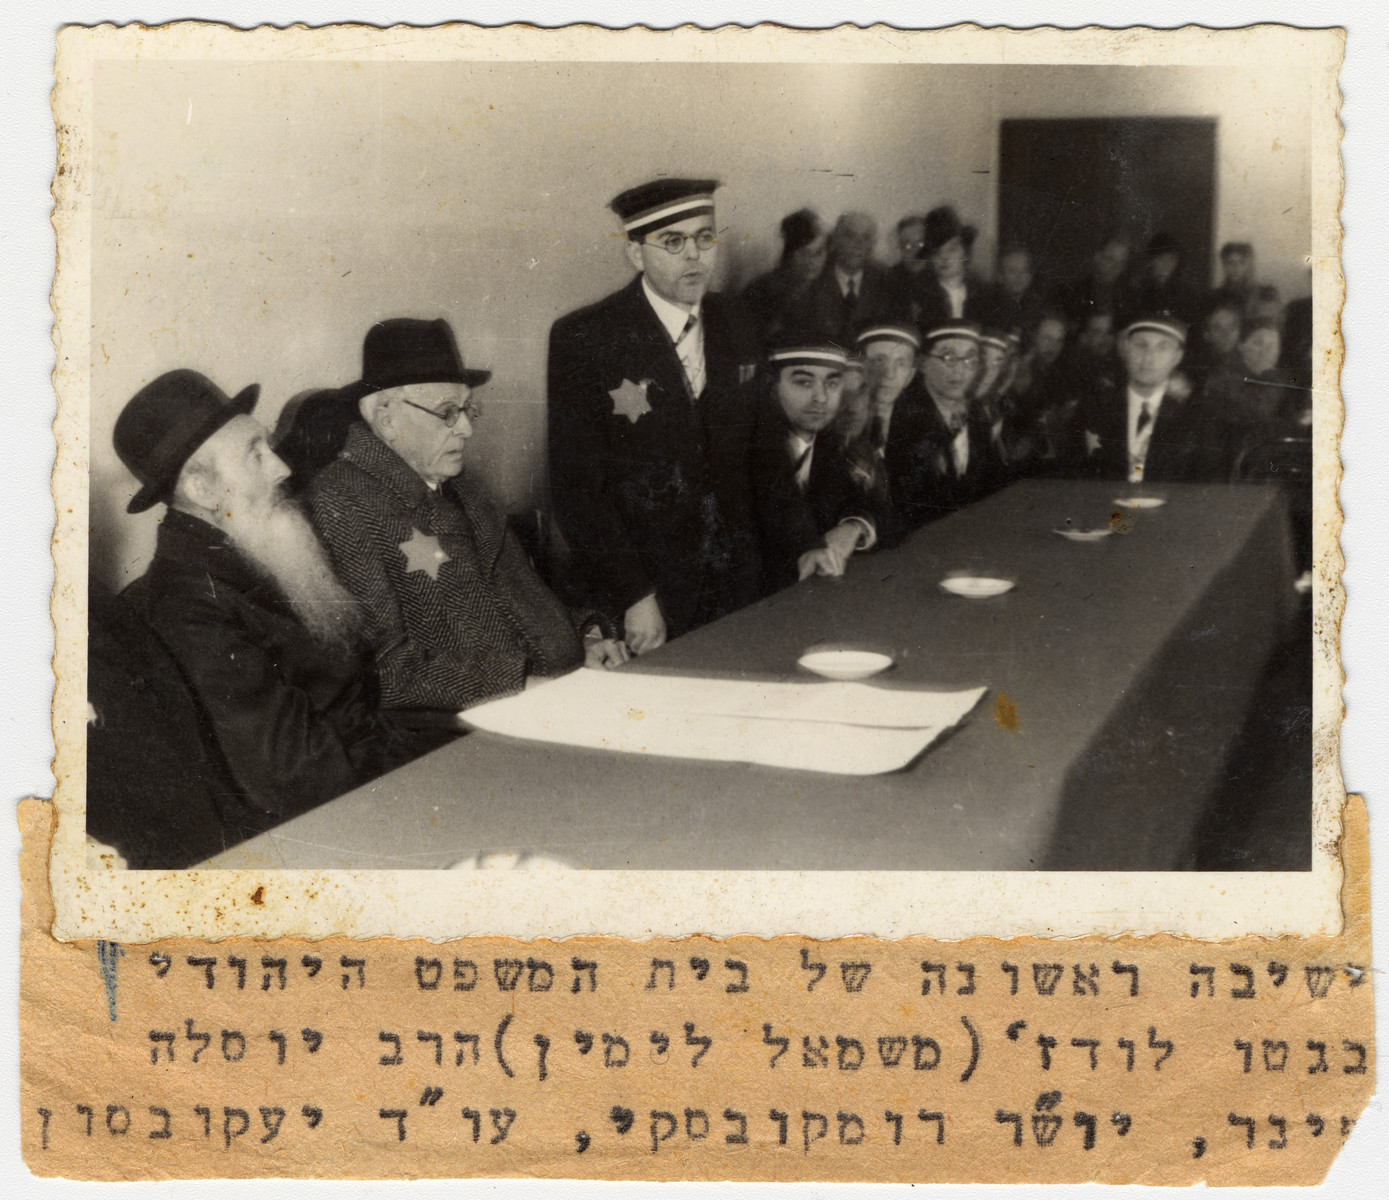 Mordechai Chaim Rumkowski, chairman of the Jewish Council in the Lodz ghetto, attends the swearing-in ceremony for the judges of the Jewish court.  Speaking is attorney Stanislaw Jakobson.  Pictured on the right of Rumkowski is Rabbi Yosif Fajner.